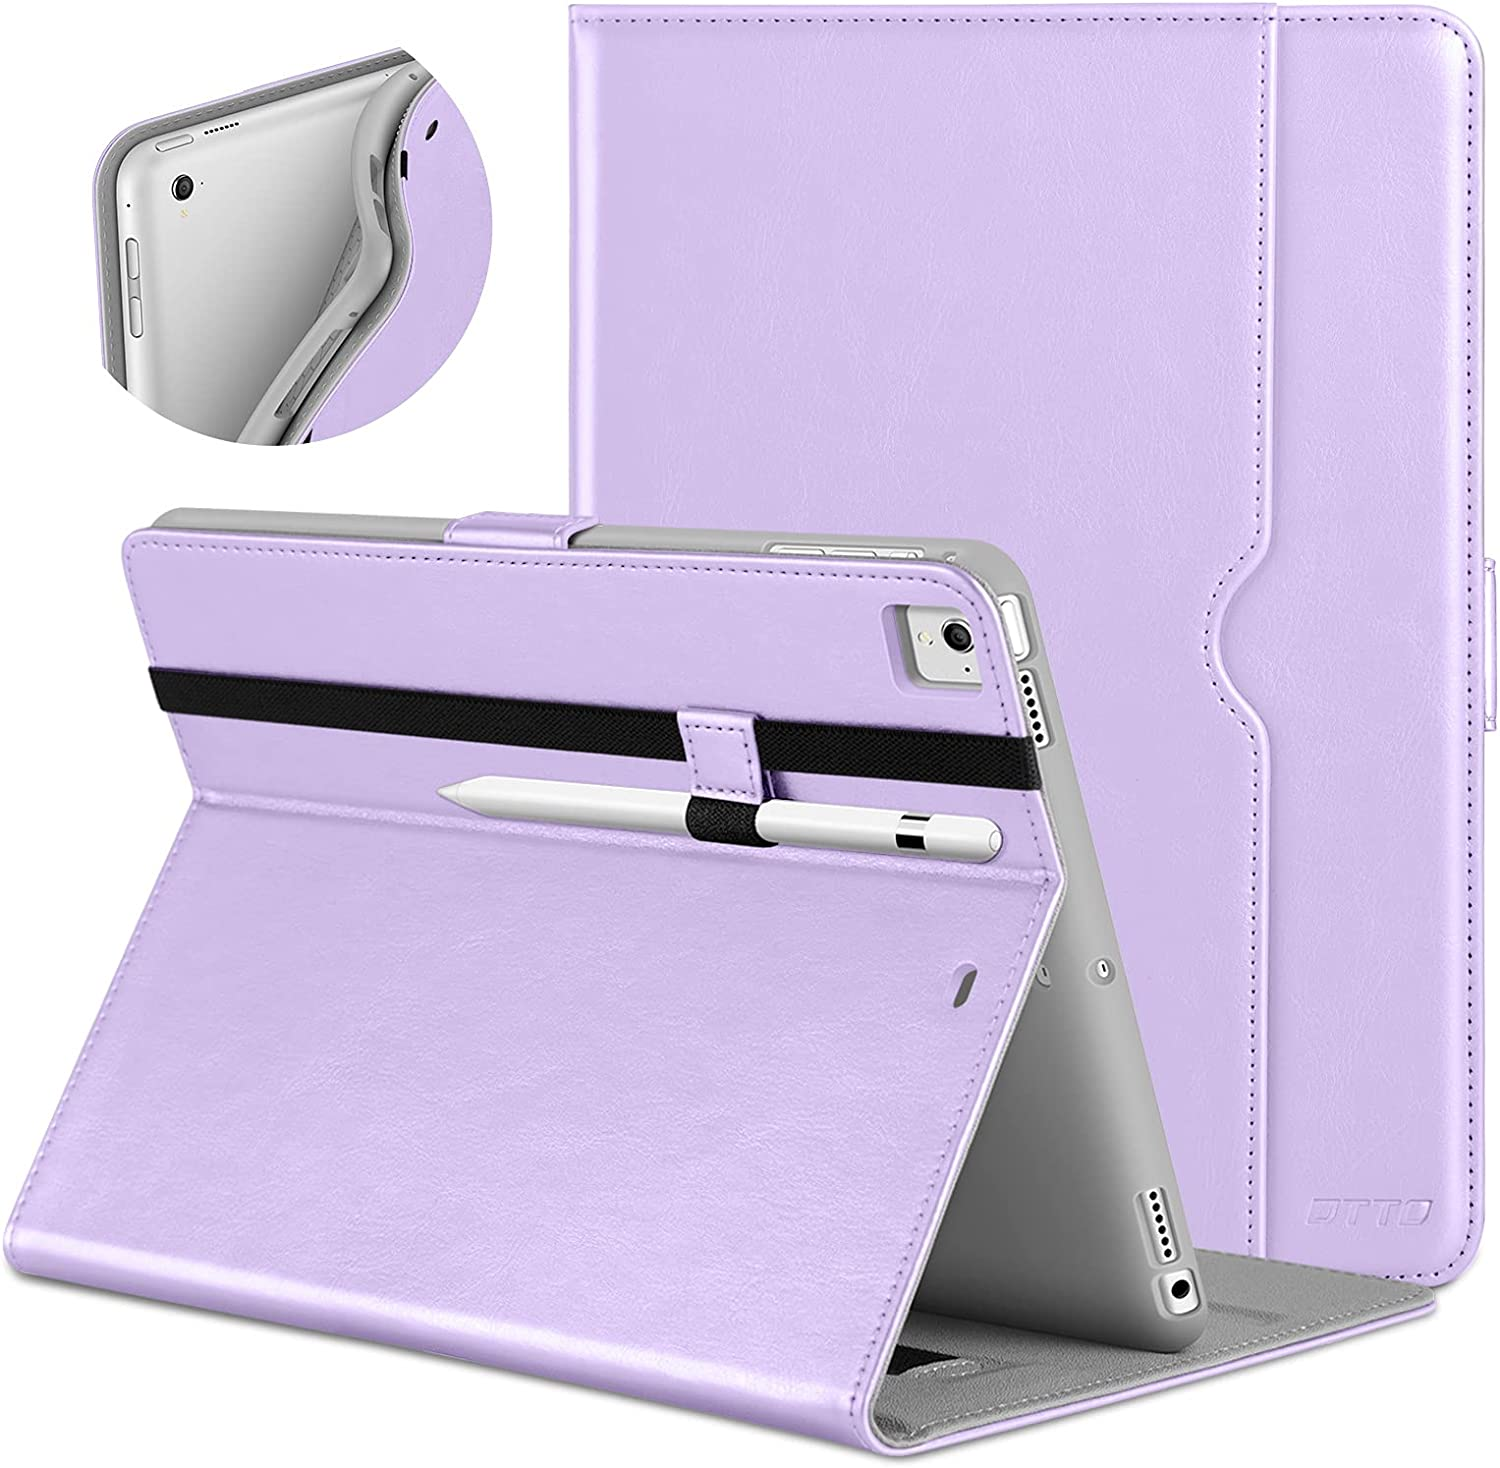 DTTO New iPad 9.7 Inch 5th/6th Generation 2018/2017 Case with Apple Pencil Holder, Premium Leather Folio Stand Cover Case for Apple iPad 9.7 inch, Also Fit iPad Pro 9.7/Air 2/Air - Lavender